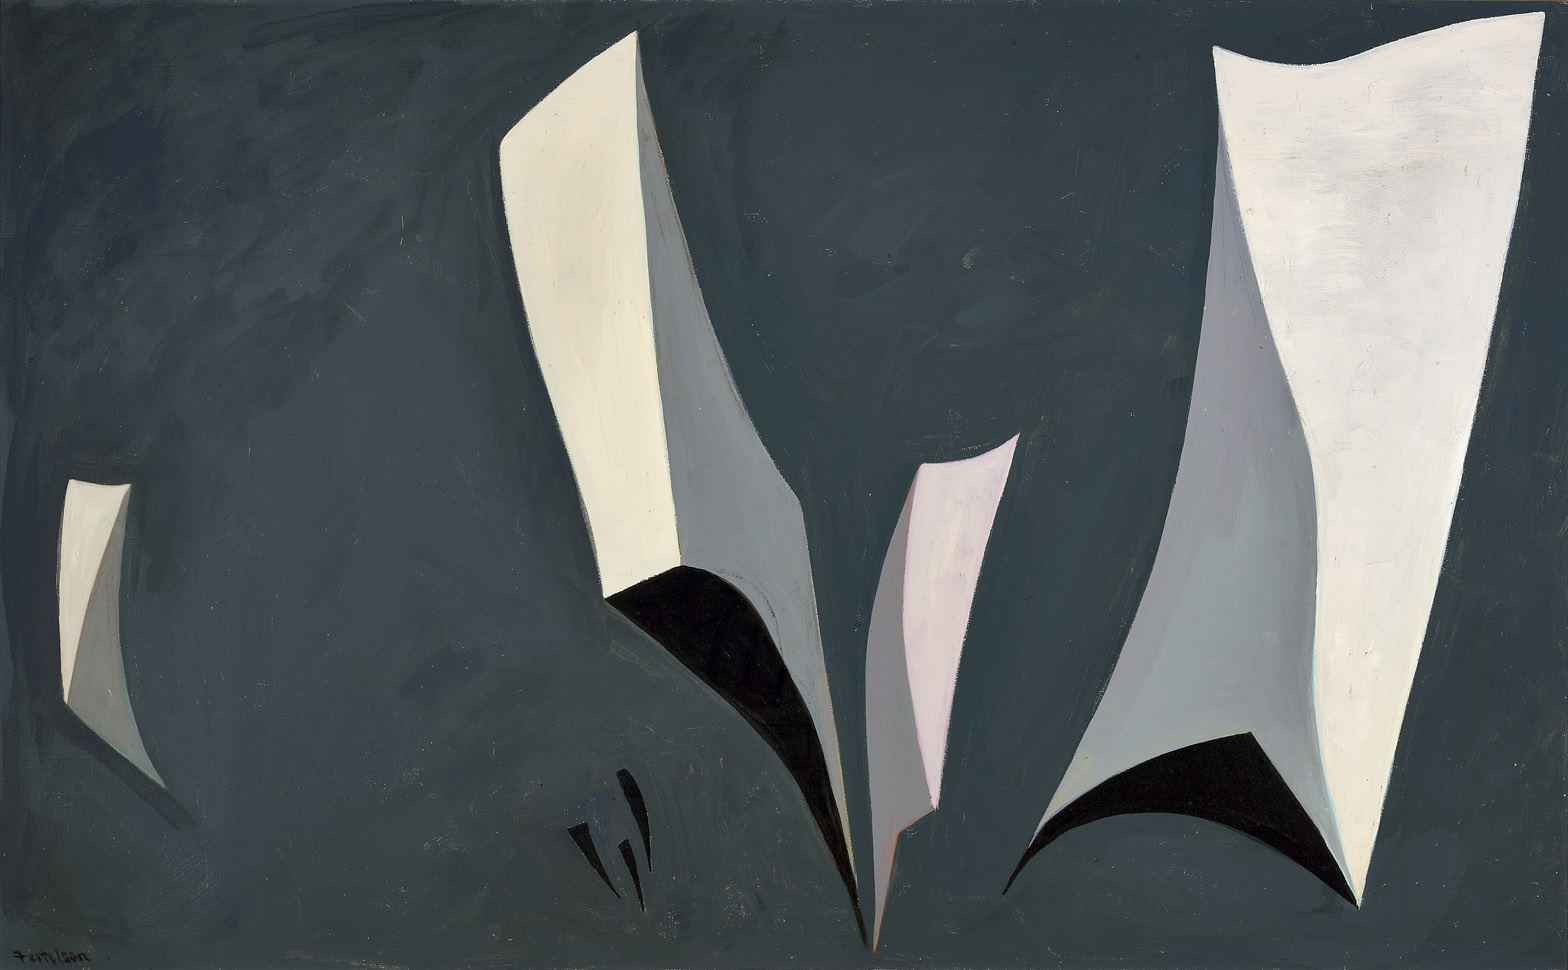 Untitled, Magical Forms , 1947  oil on canvas 31 x 47 inches; 78.7 x 119.4 centimeters